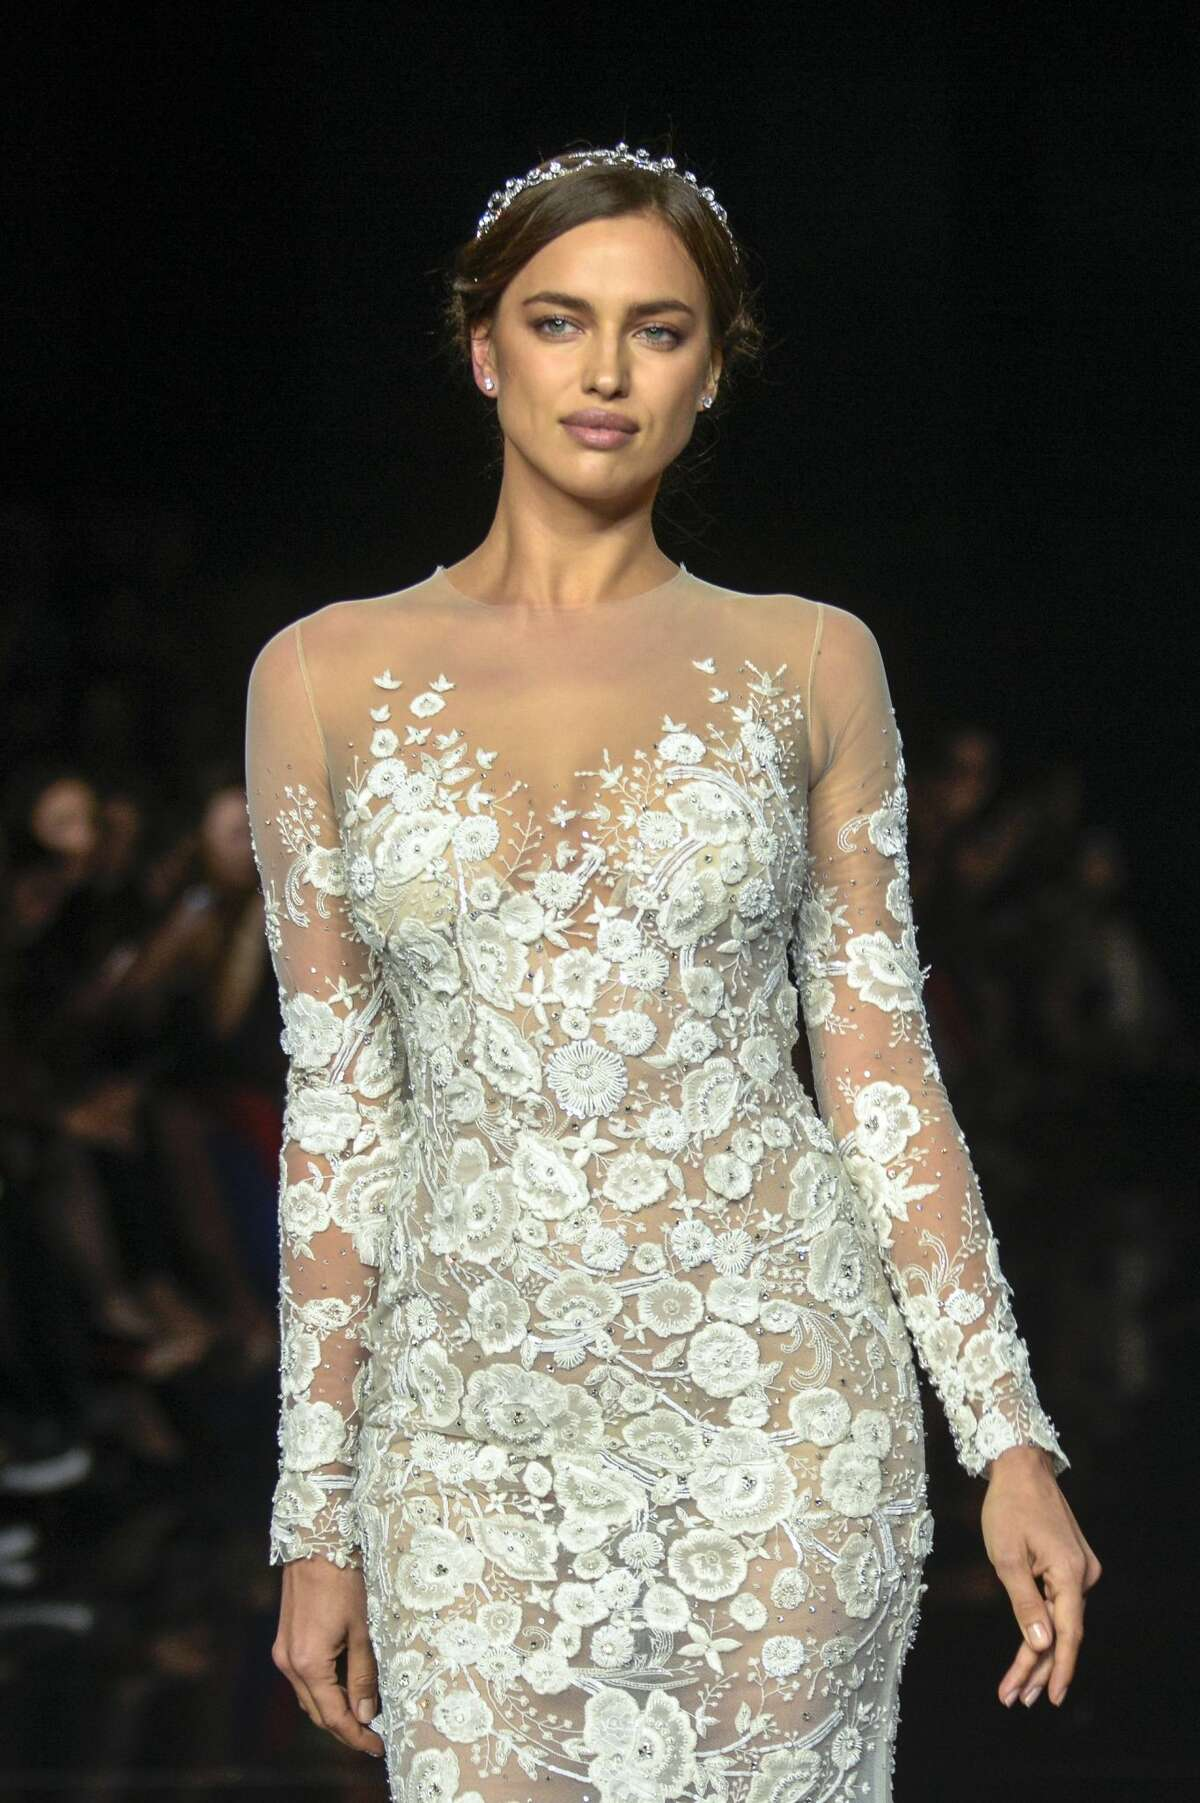 Irina Shayk walks the runway for the latest collection by Pronovias 2017 on April 29, 2016 in Barcelona, Spain. (Photo by Robert Marquardt/Getty Images)